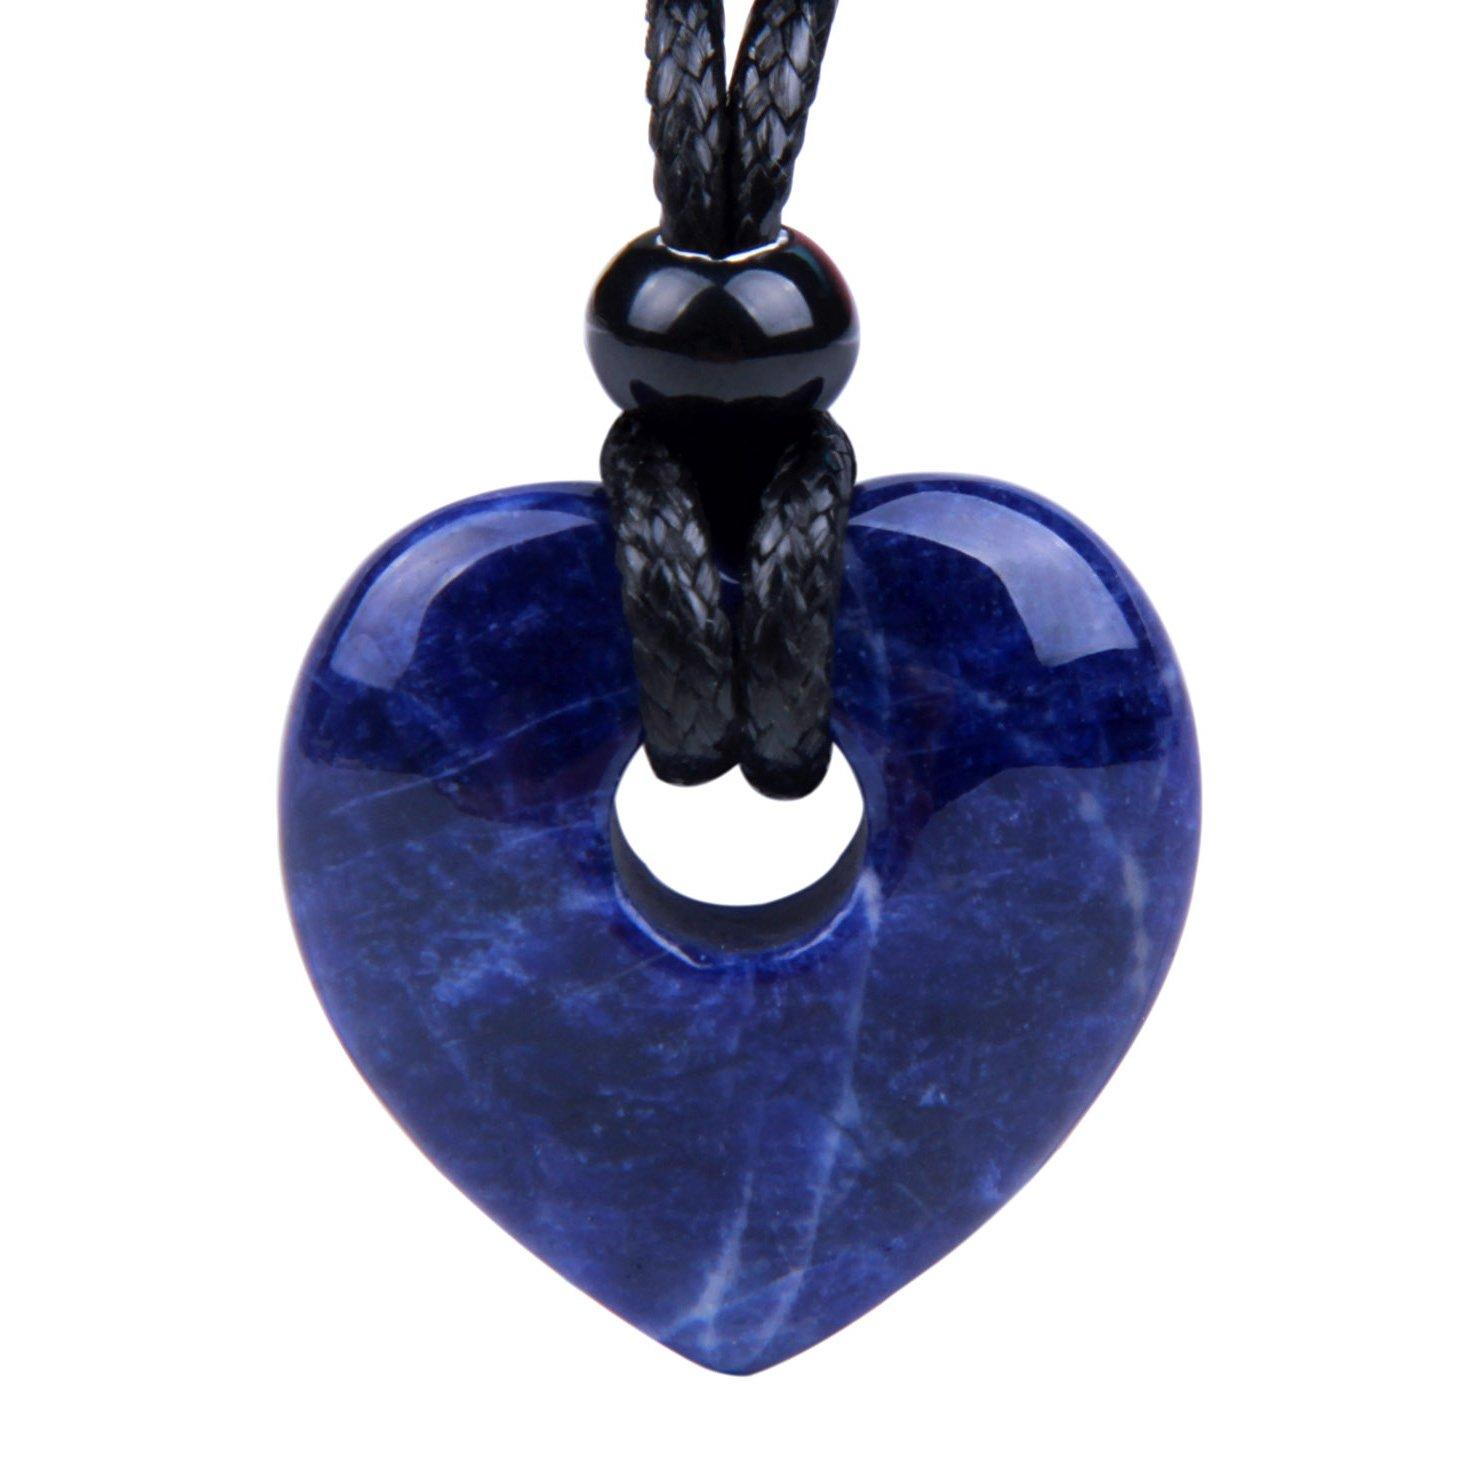 Sodalite Gemstone Heart Shaped Gifts and Jewelry